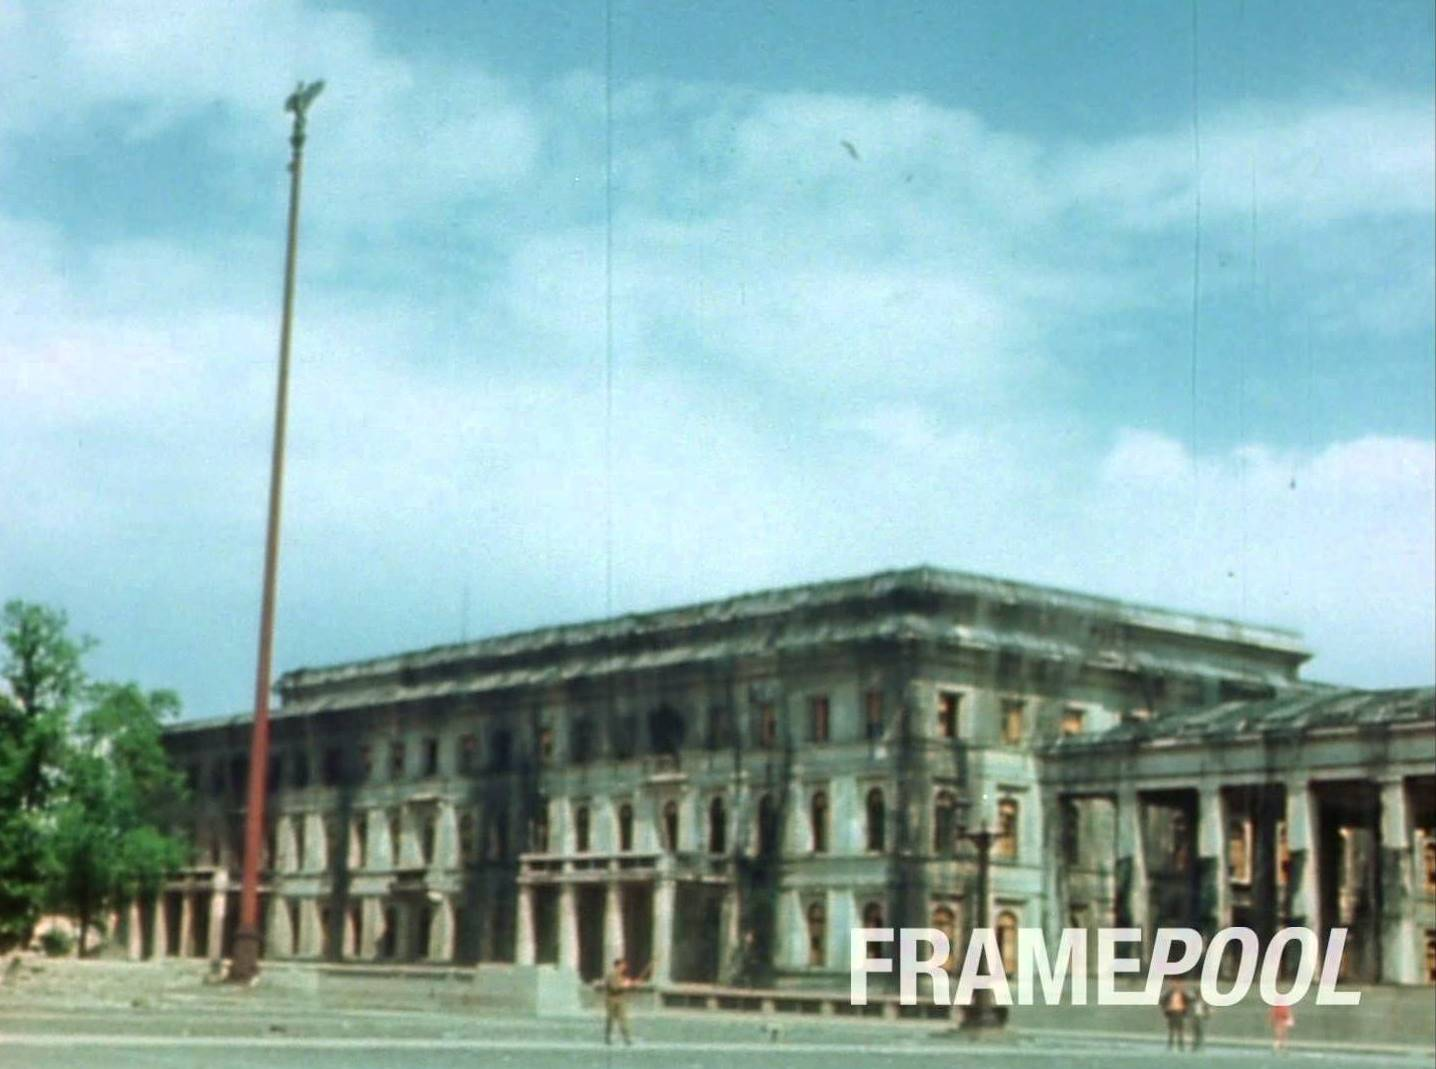 The bombed out Führerbau in 1945 -- screenshot from Framepool